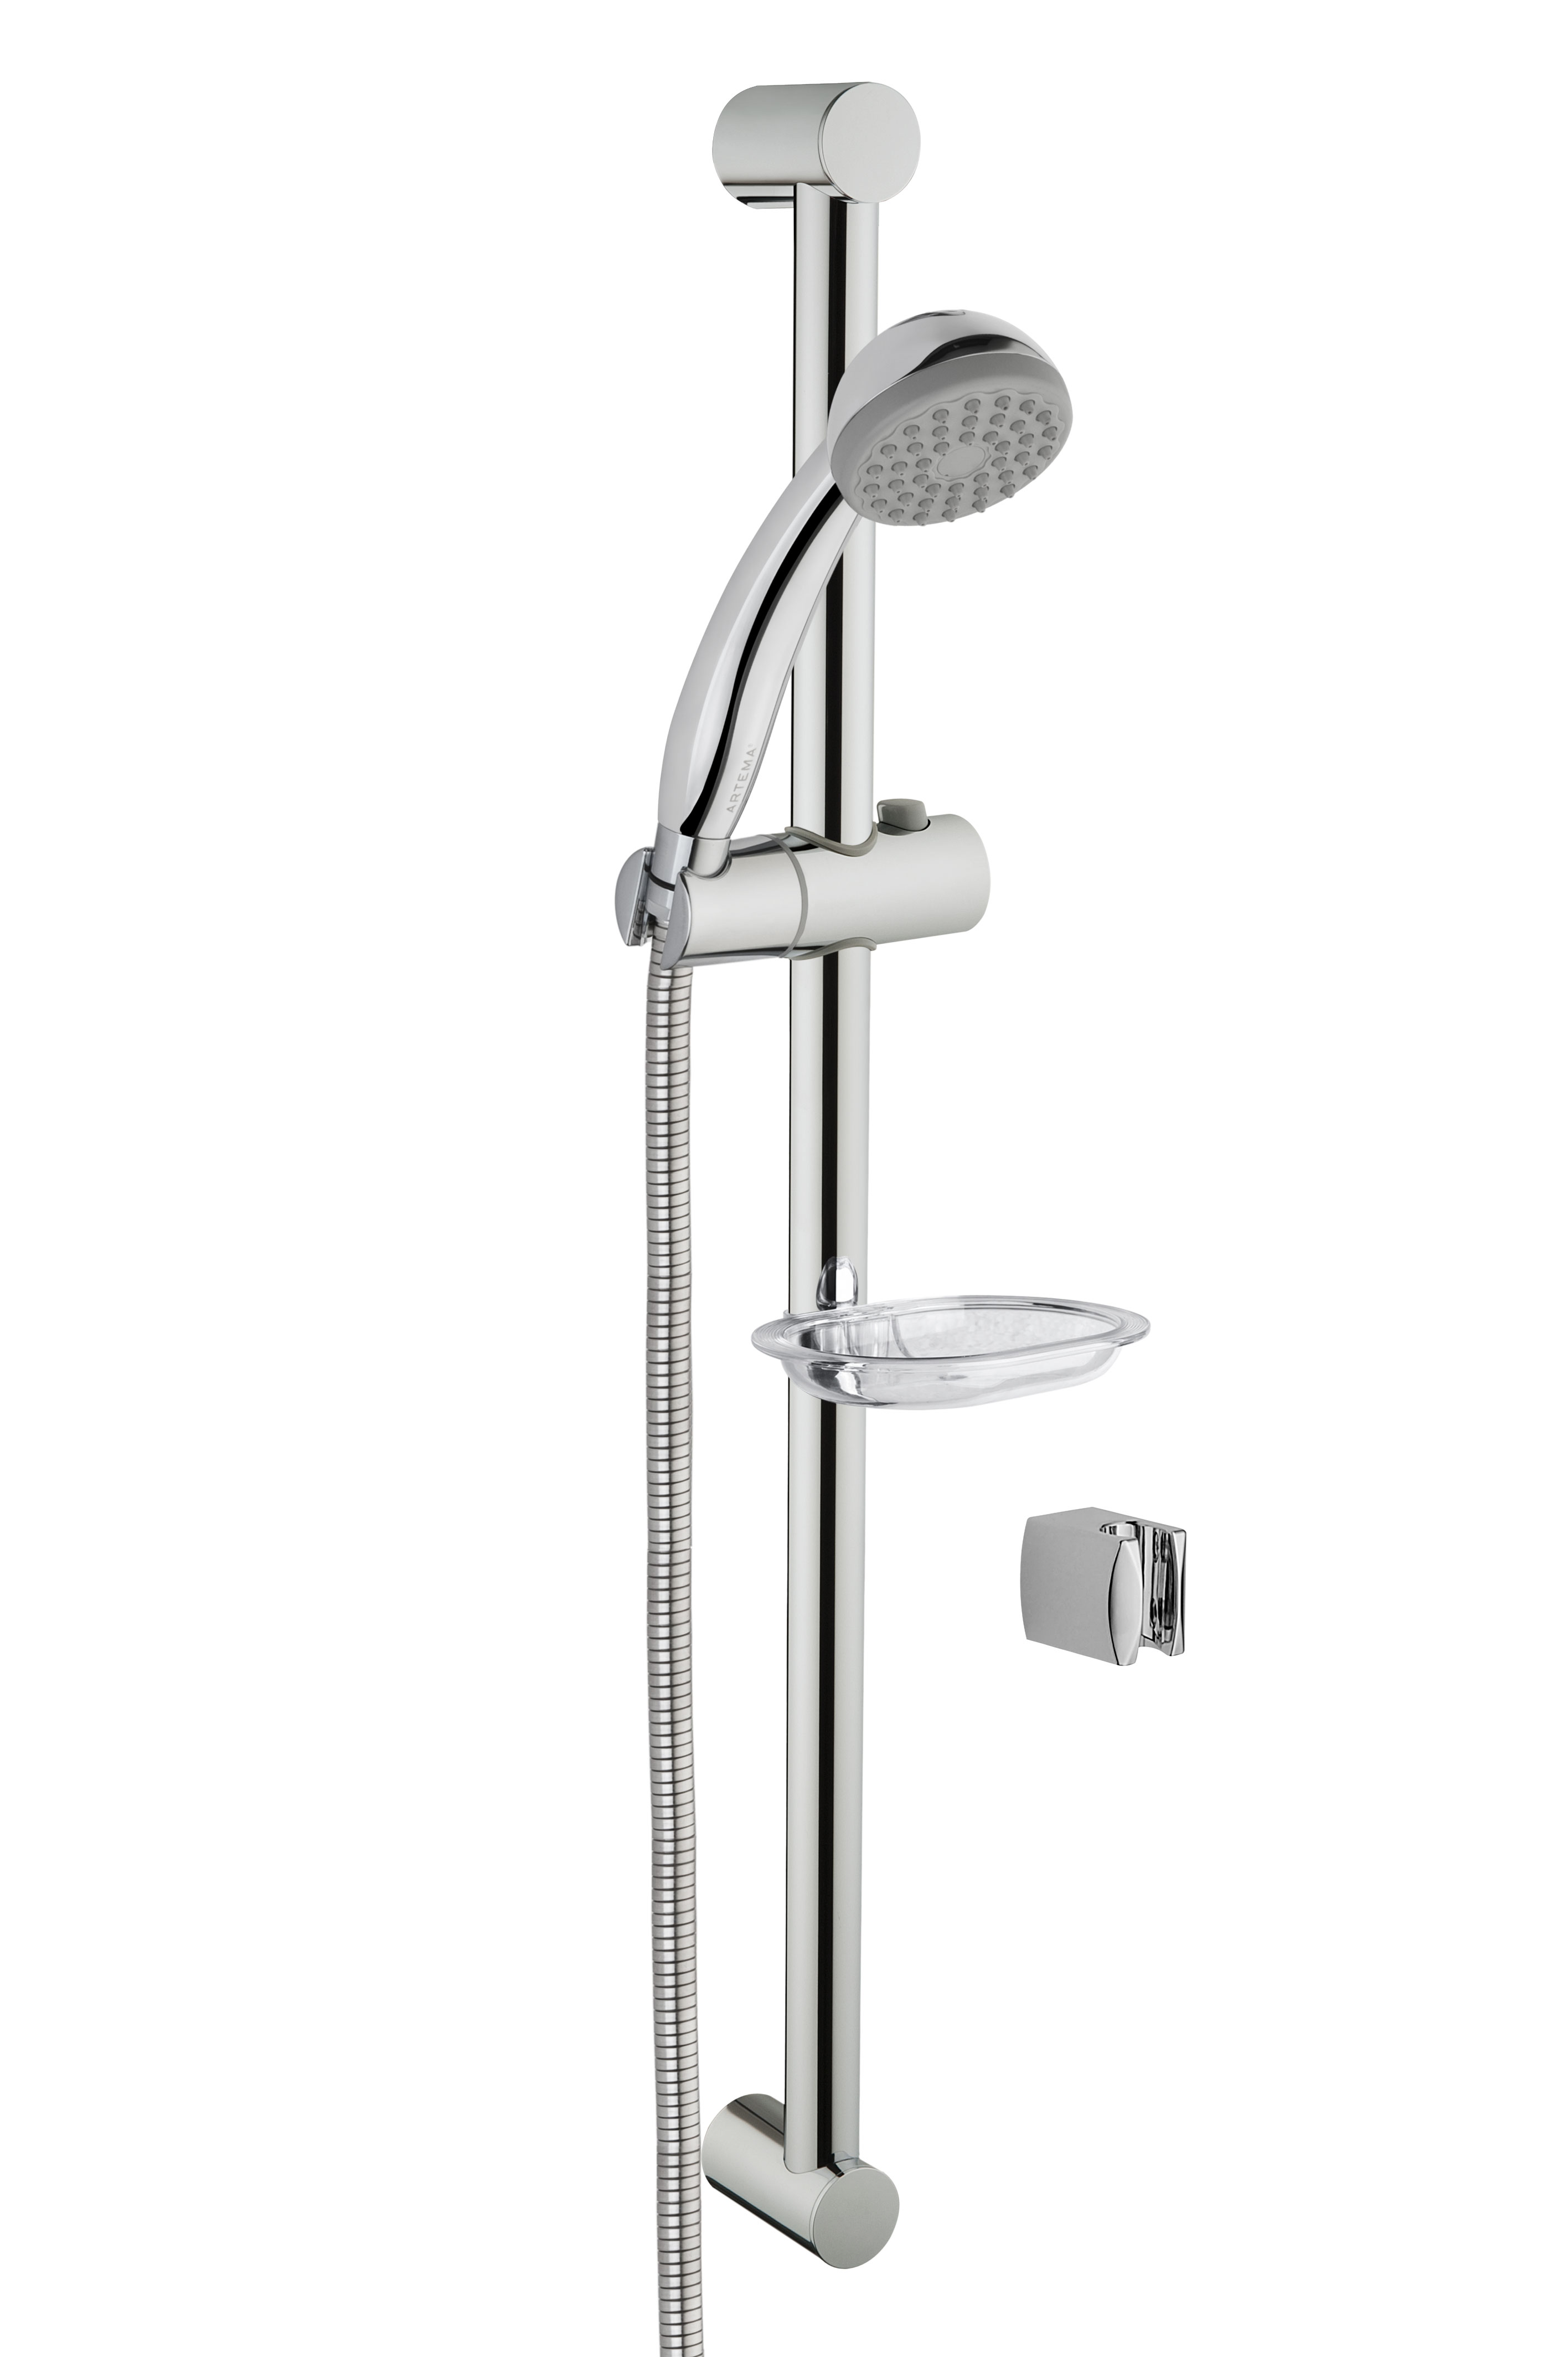 click on Solo C Handshower with Slide Rail image to enlarge